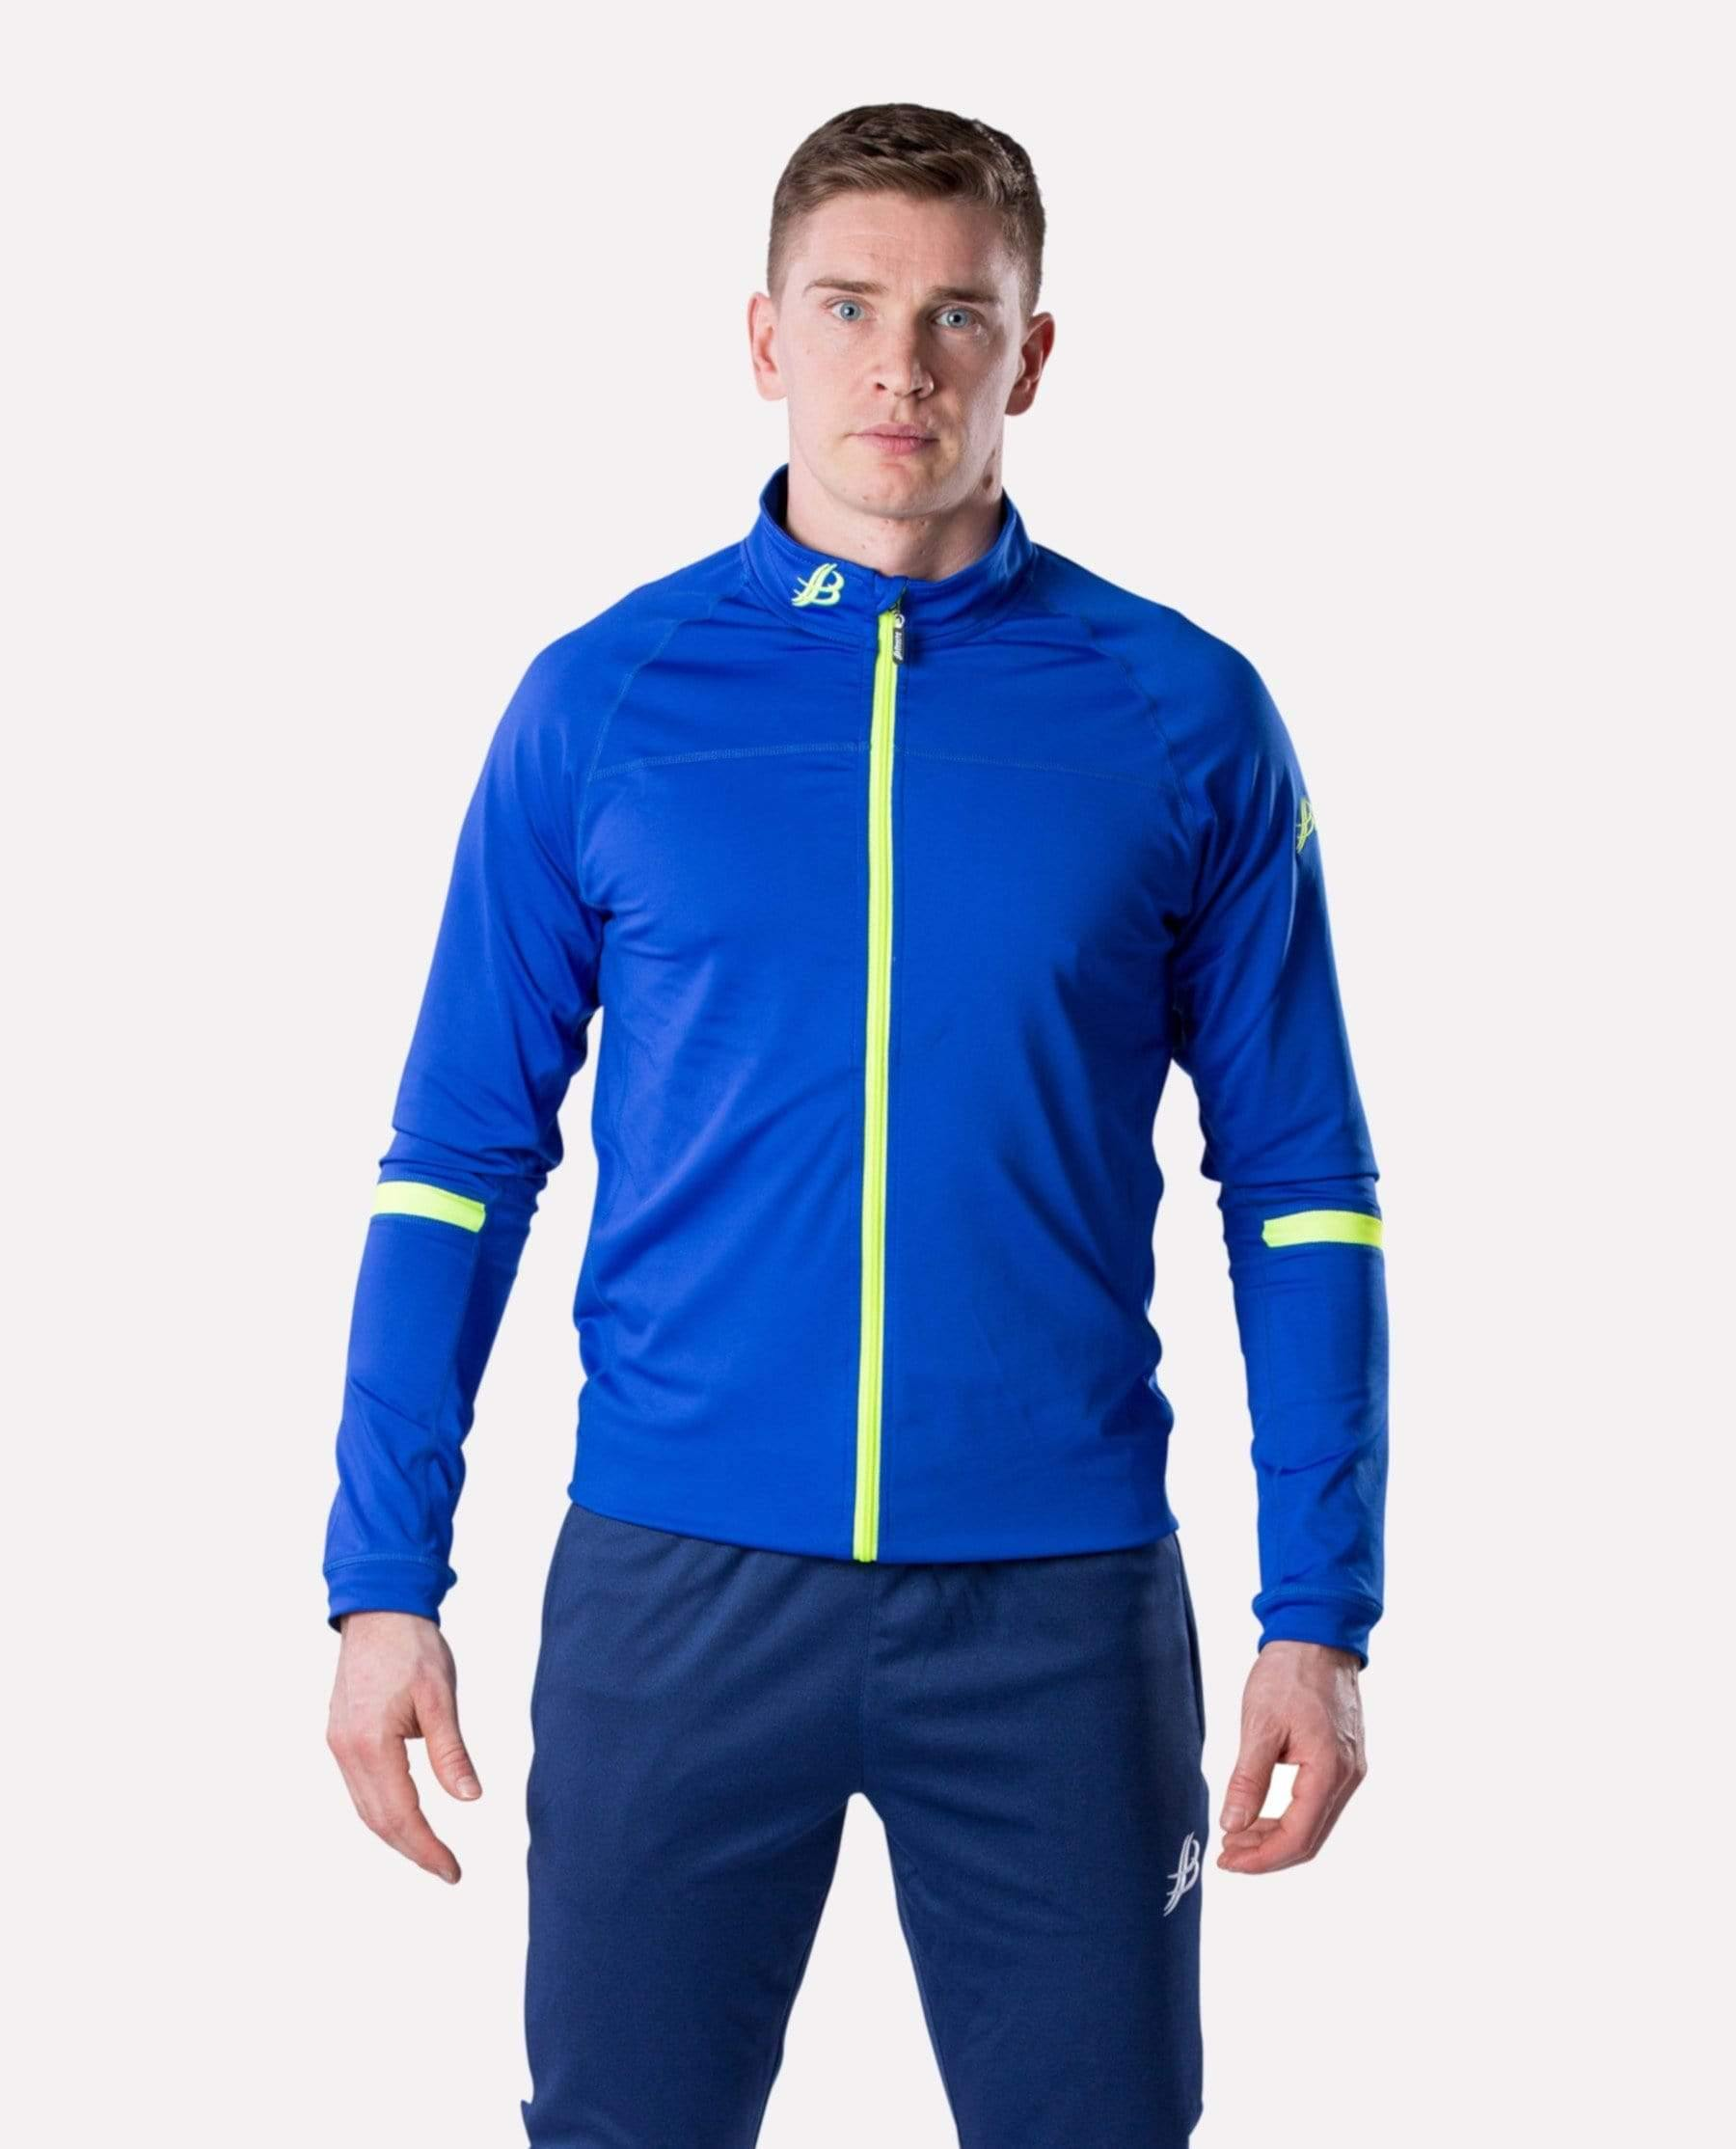 ALPHA Adult Full Zip (Blue/Luminous) - Bourke Sports Limited